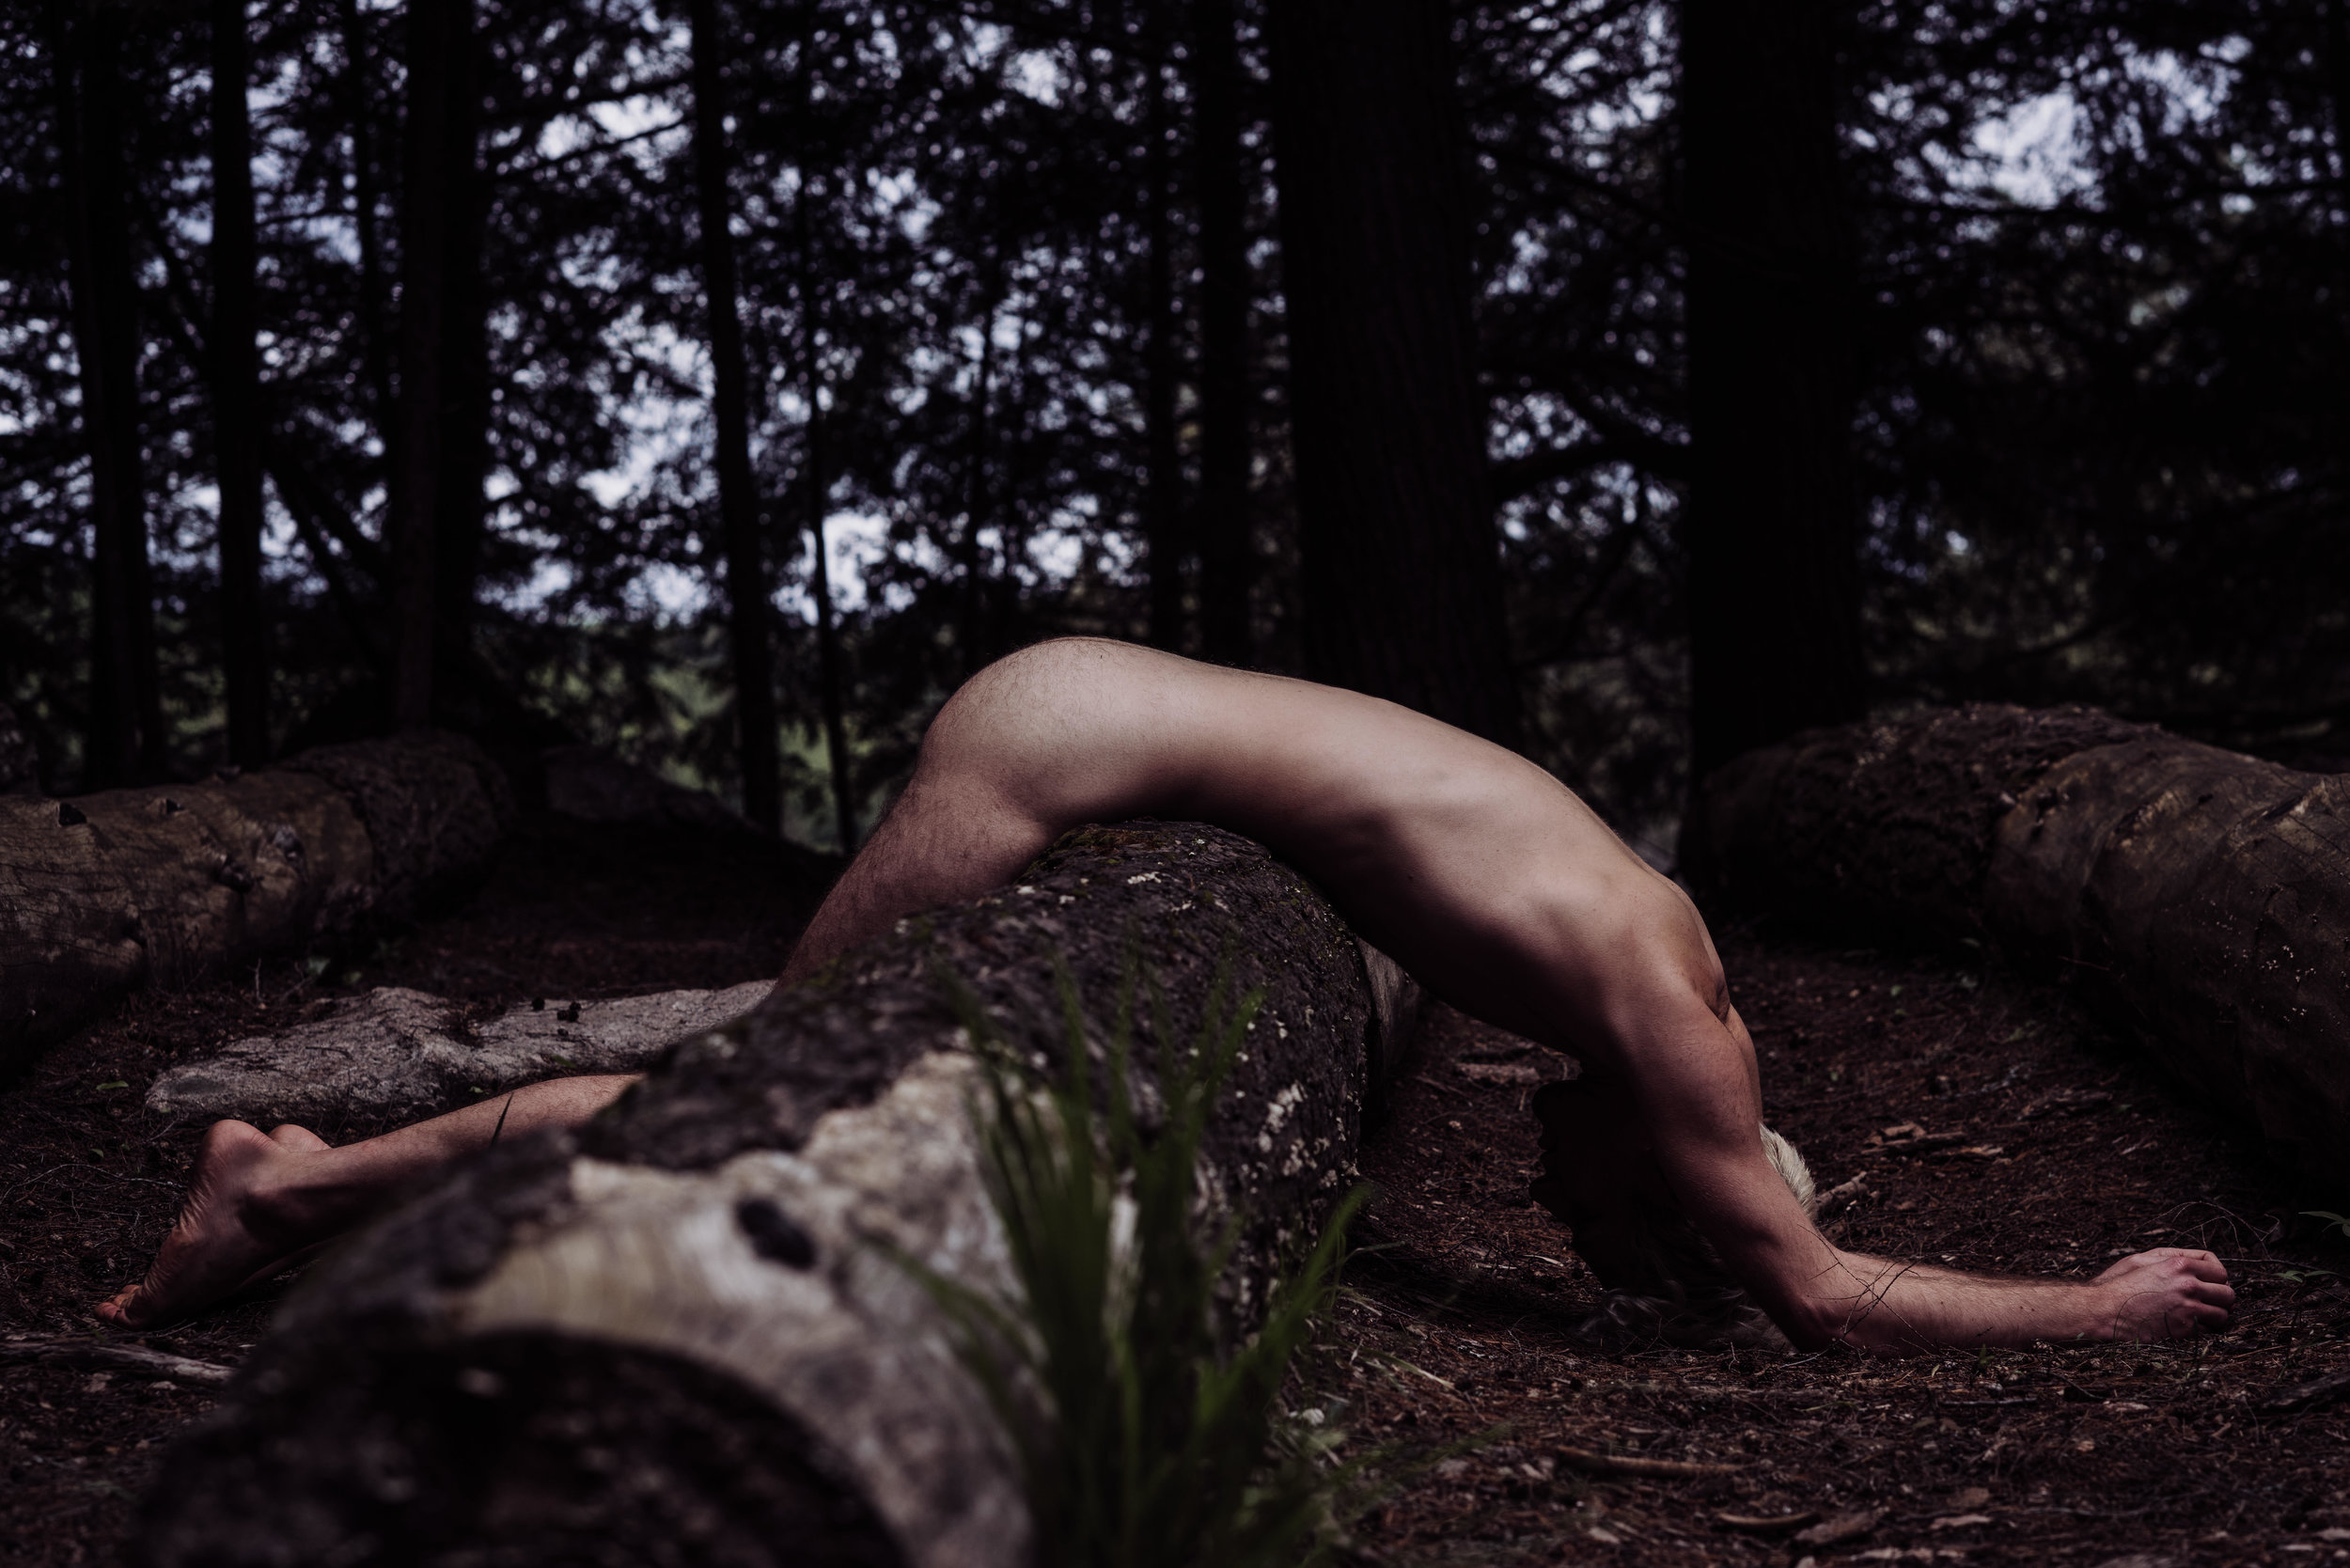 Oklahoma City boudoir photographer male boudoir man lying on log outdoors